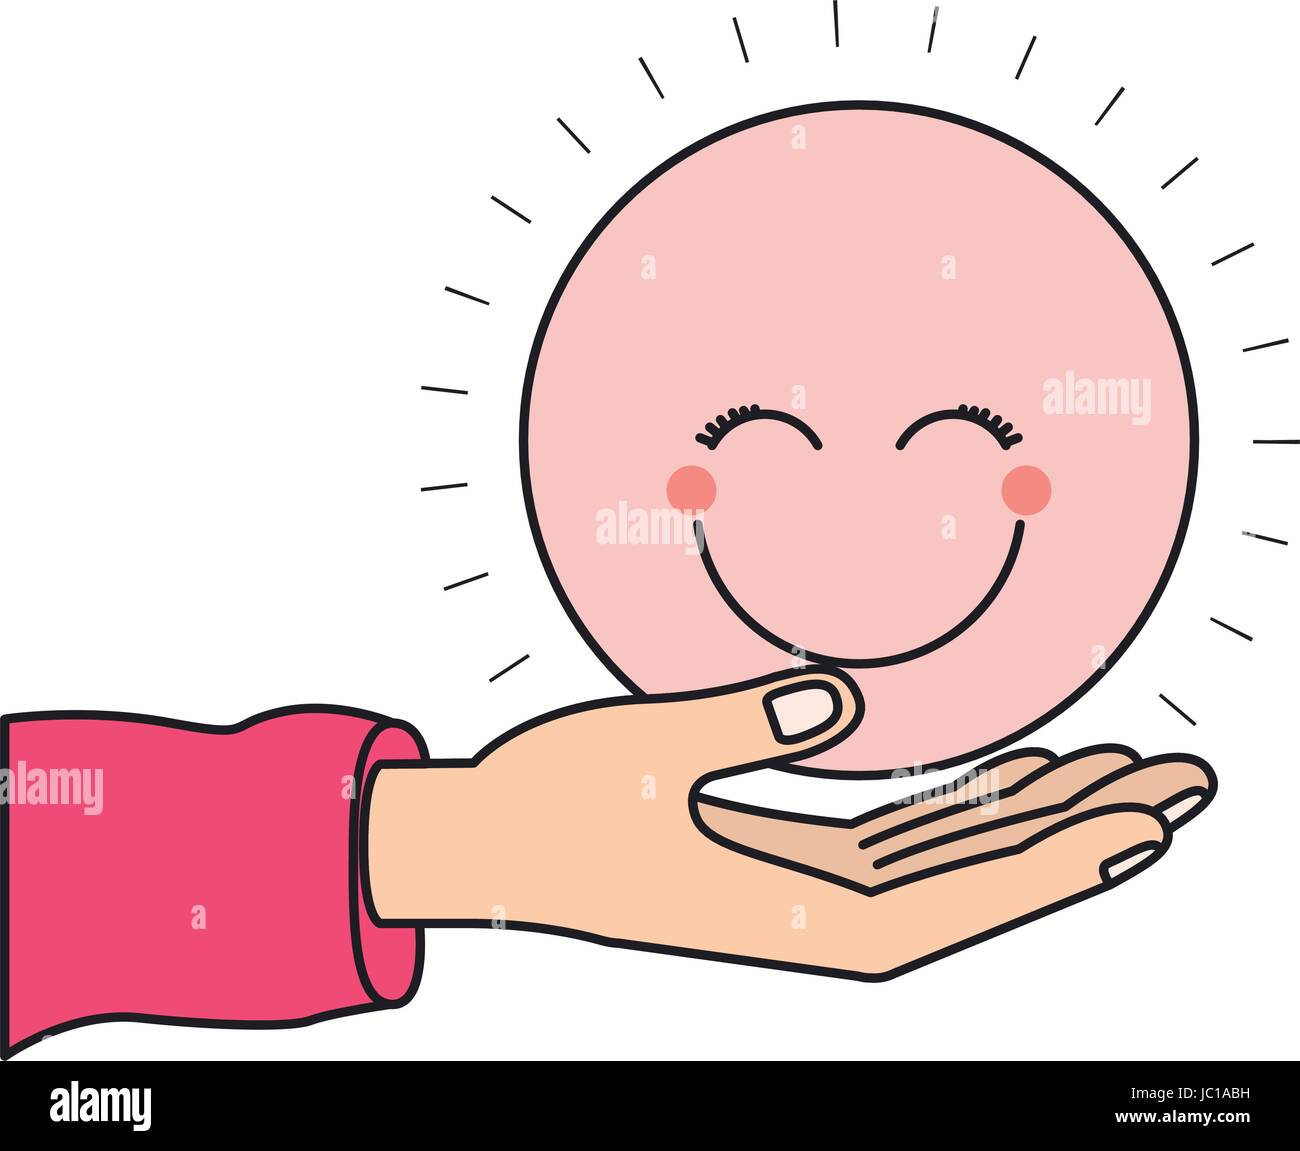 colorful silhouette hand palm giving a pink happy face smiling - Stock Vector